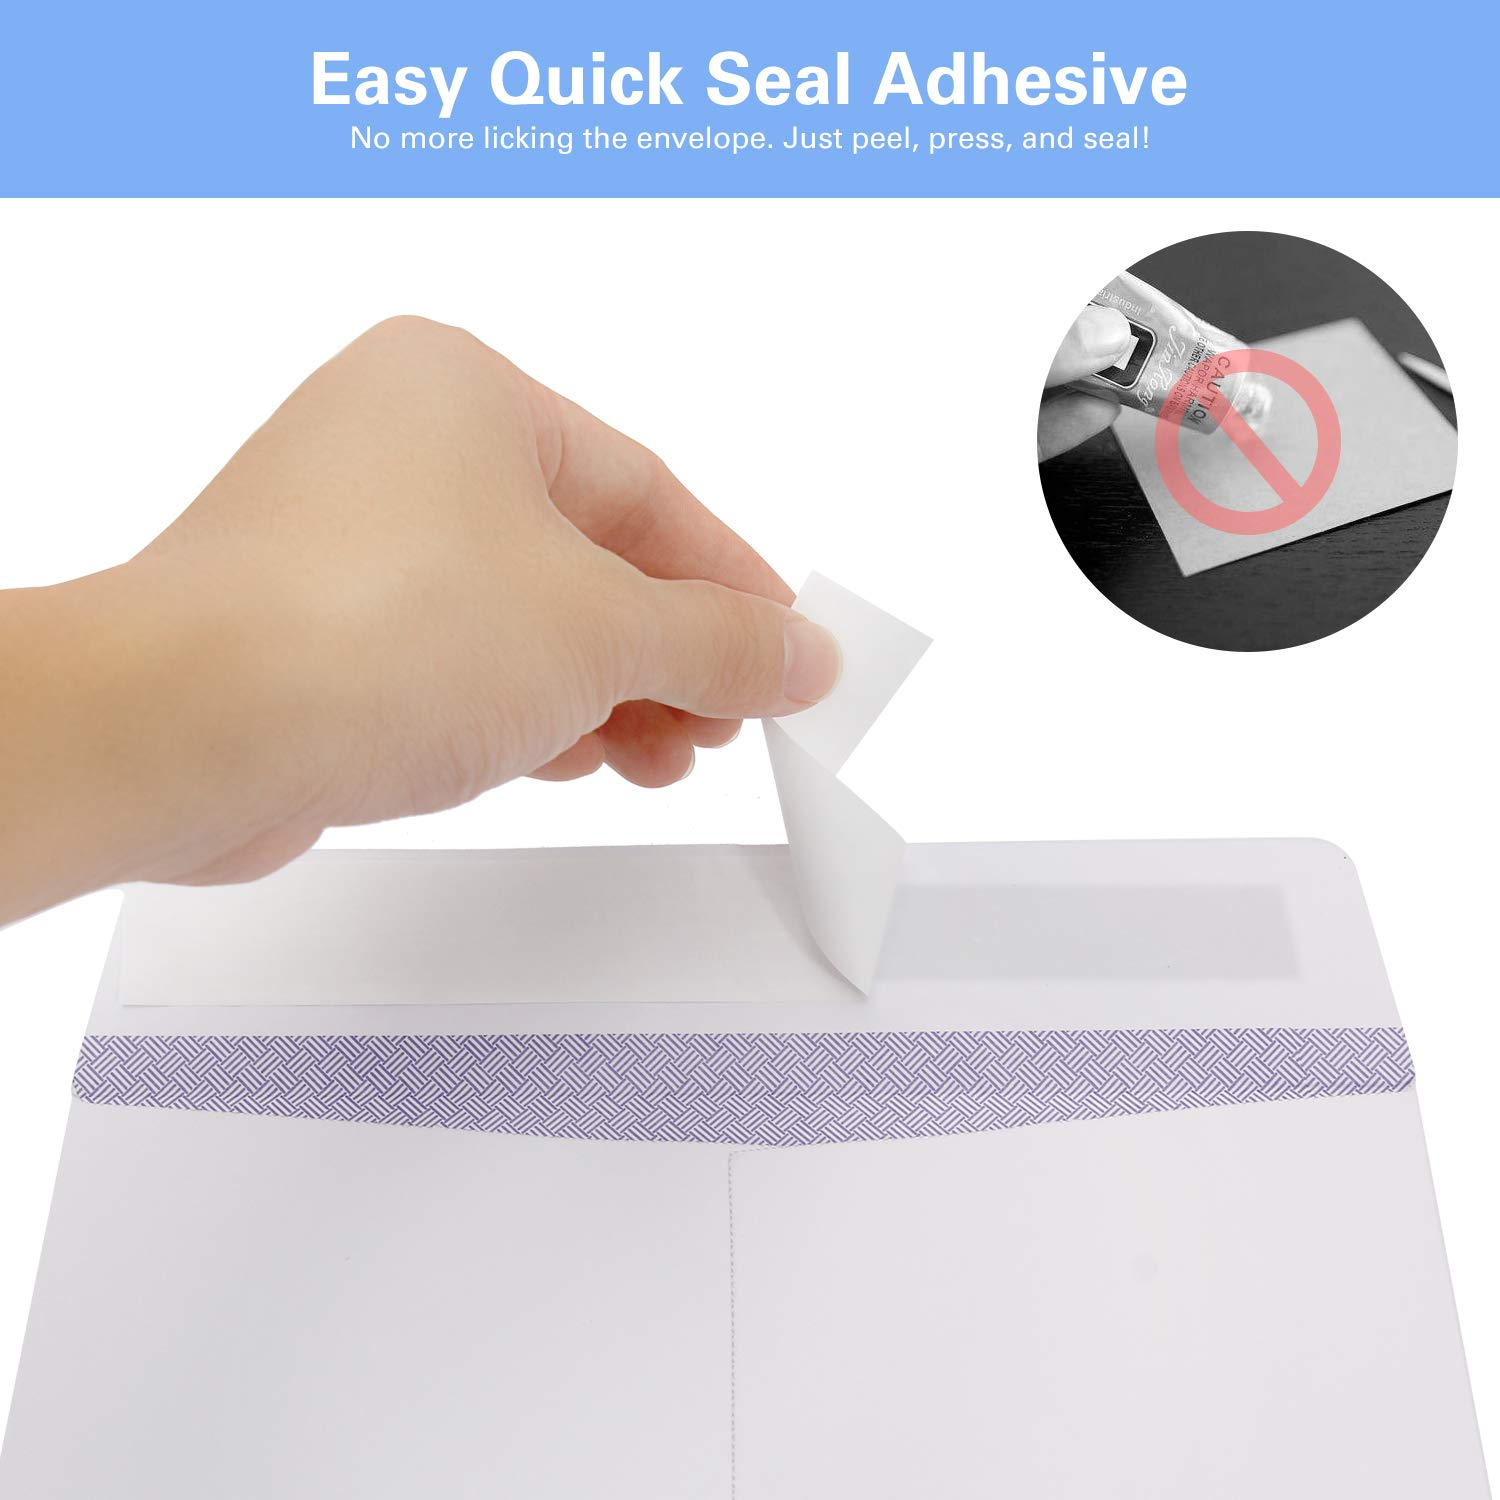 100 9 x 12 Self Seal Security White Catalog Envelopes Ohuhu, for Business Documents, Secure Mailing, Photos, Ultra Strong Quick-Seal, 100 Envelope with Letter Opener, 28 lb by Ohuhu (Image #3)